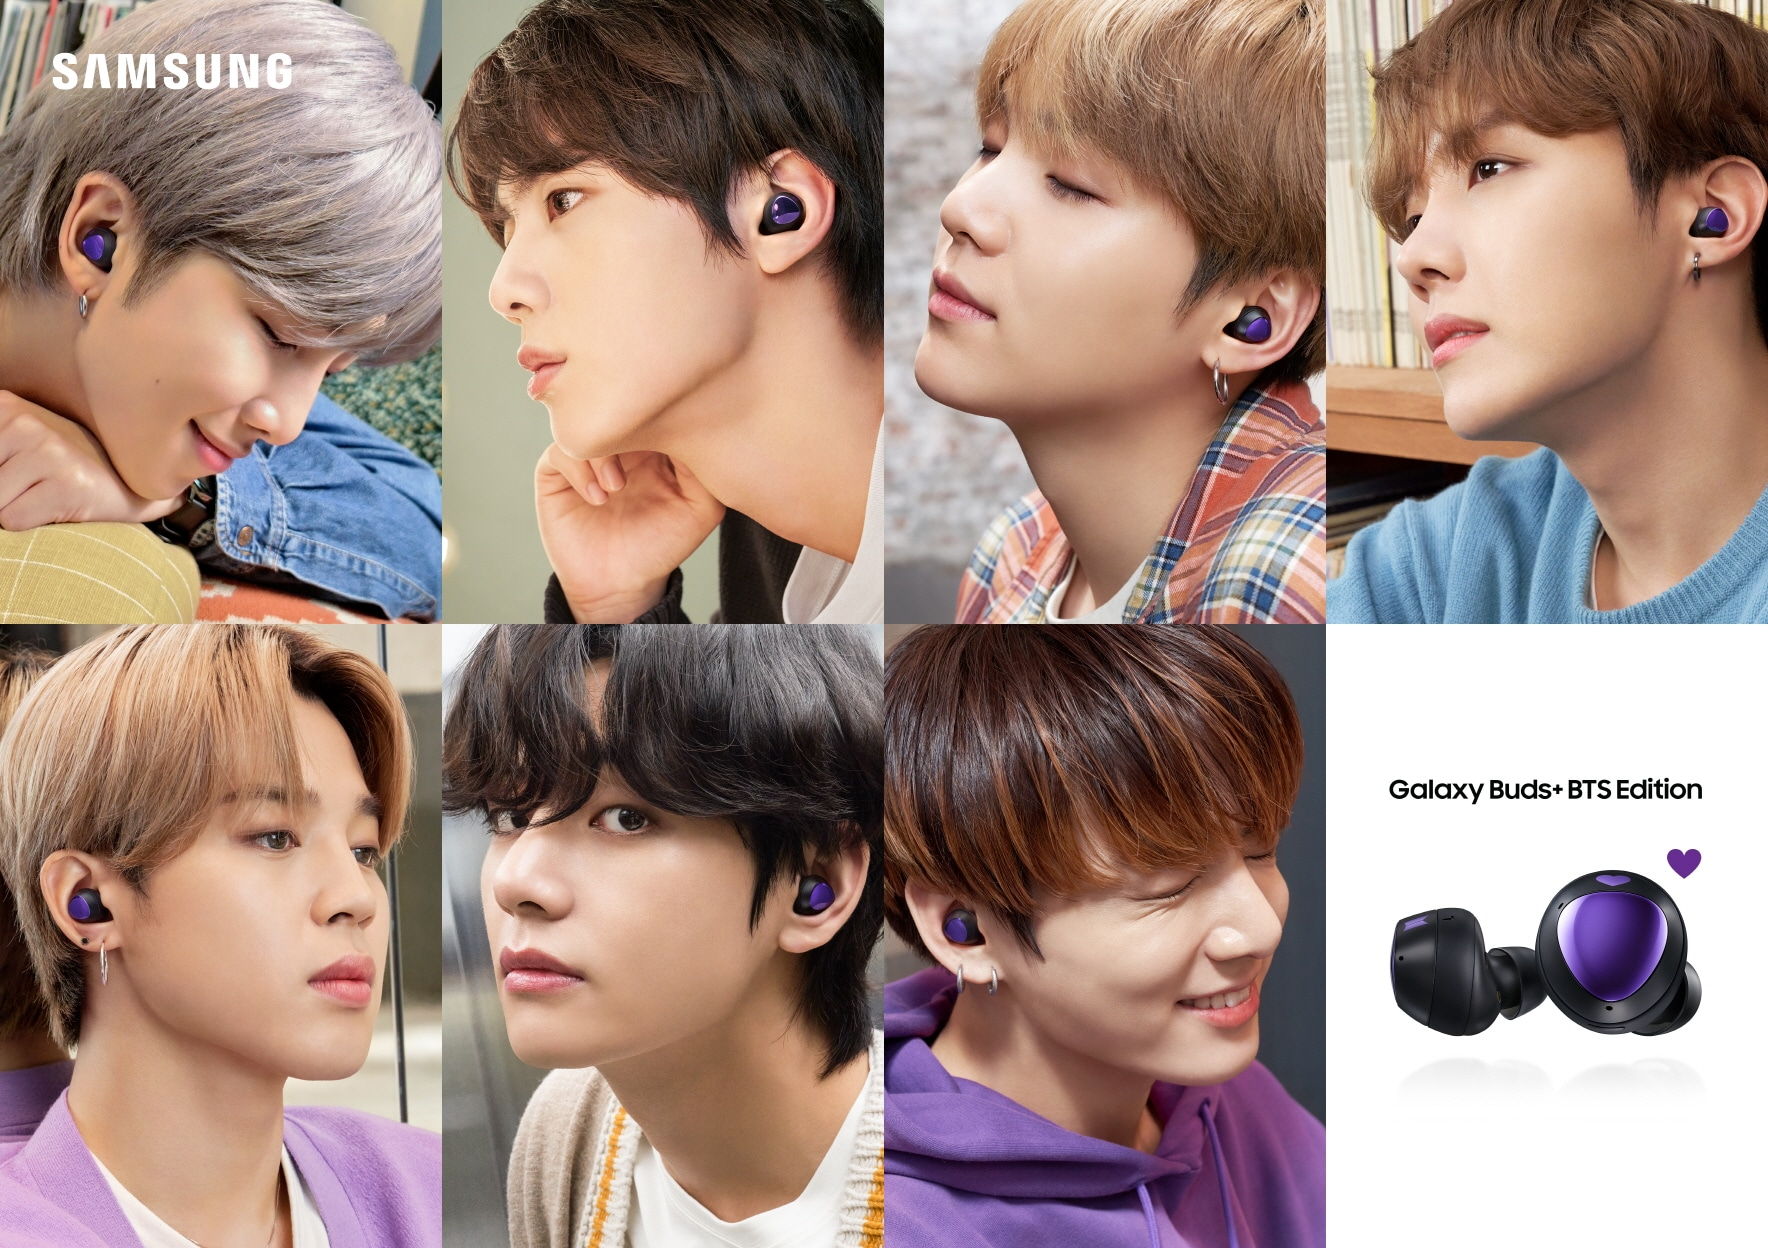 Samsung officially launches Galaxy S20+ and Galaxy Buds+ BTS Edition 15